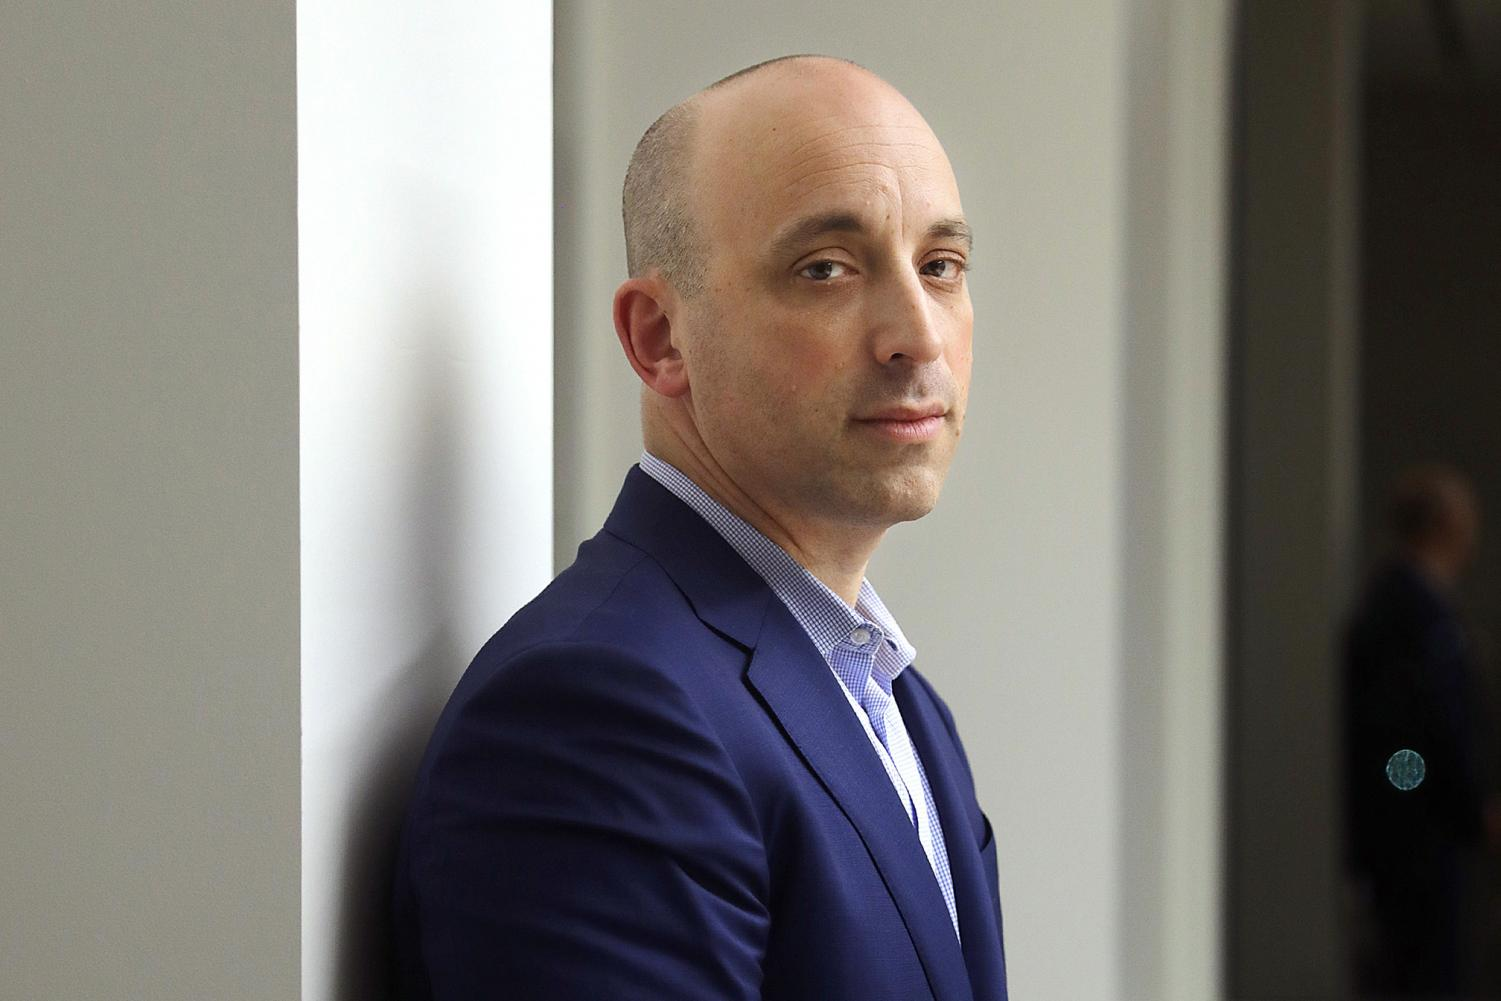 Jonathan Greenblatt, CEO of the Anti-Defamation League, is photographed in Los Angeles, Calif. on Wednesday, January 16, 2018.